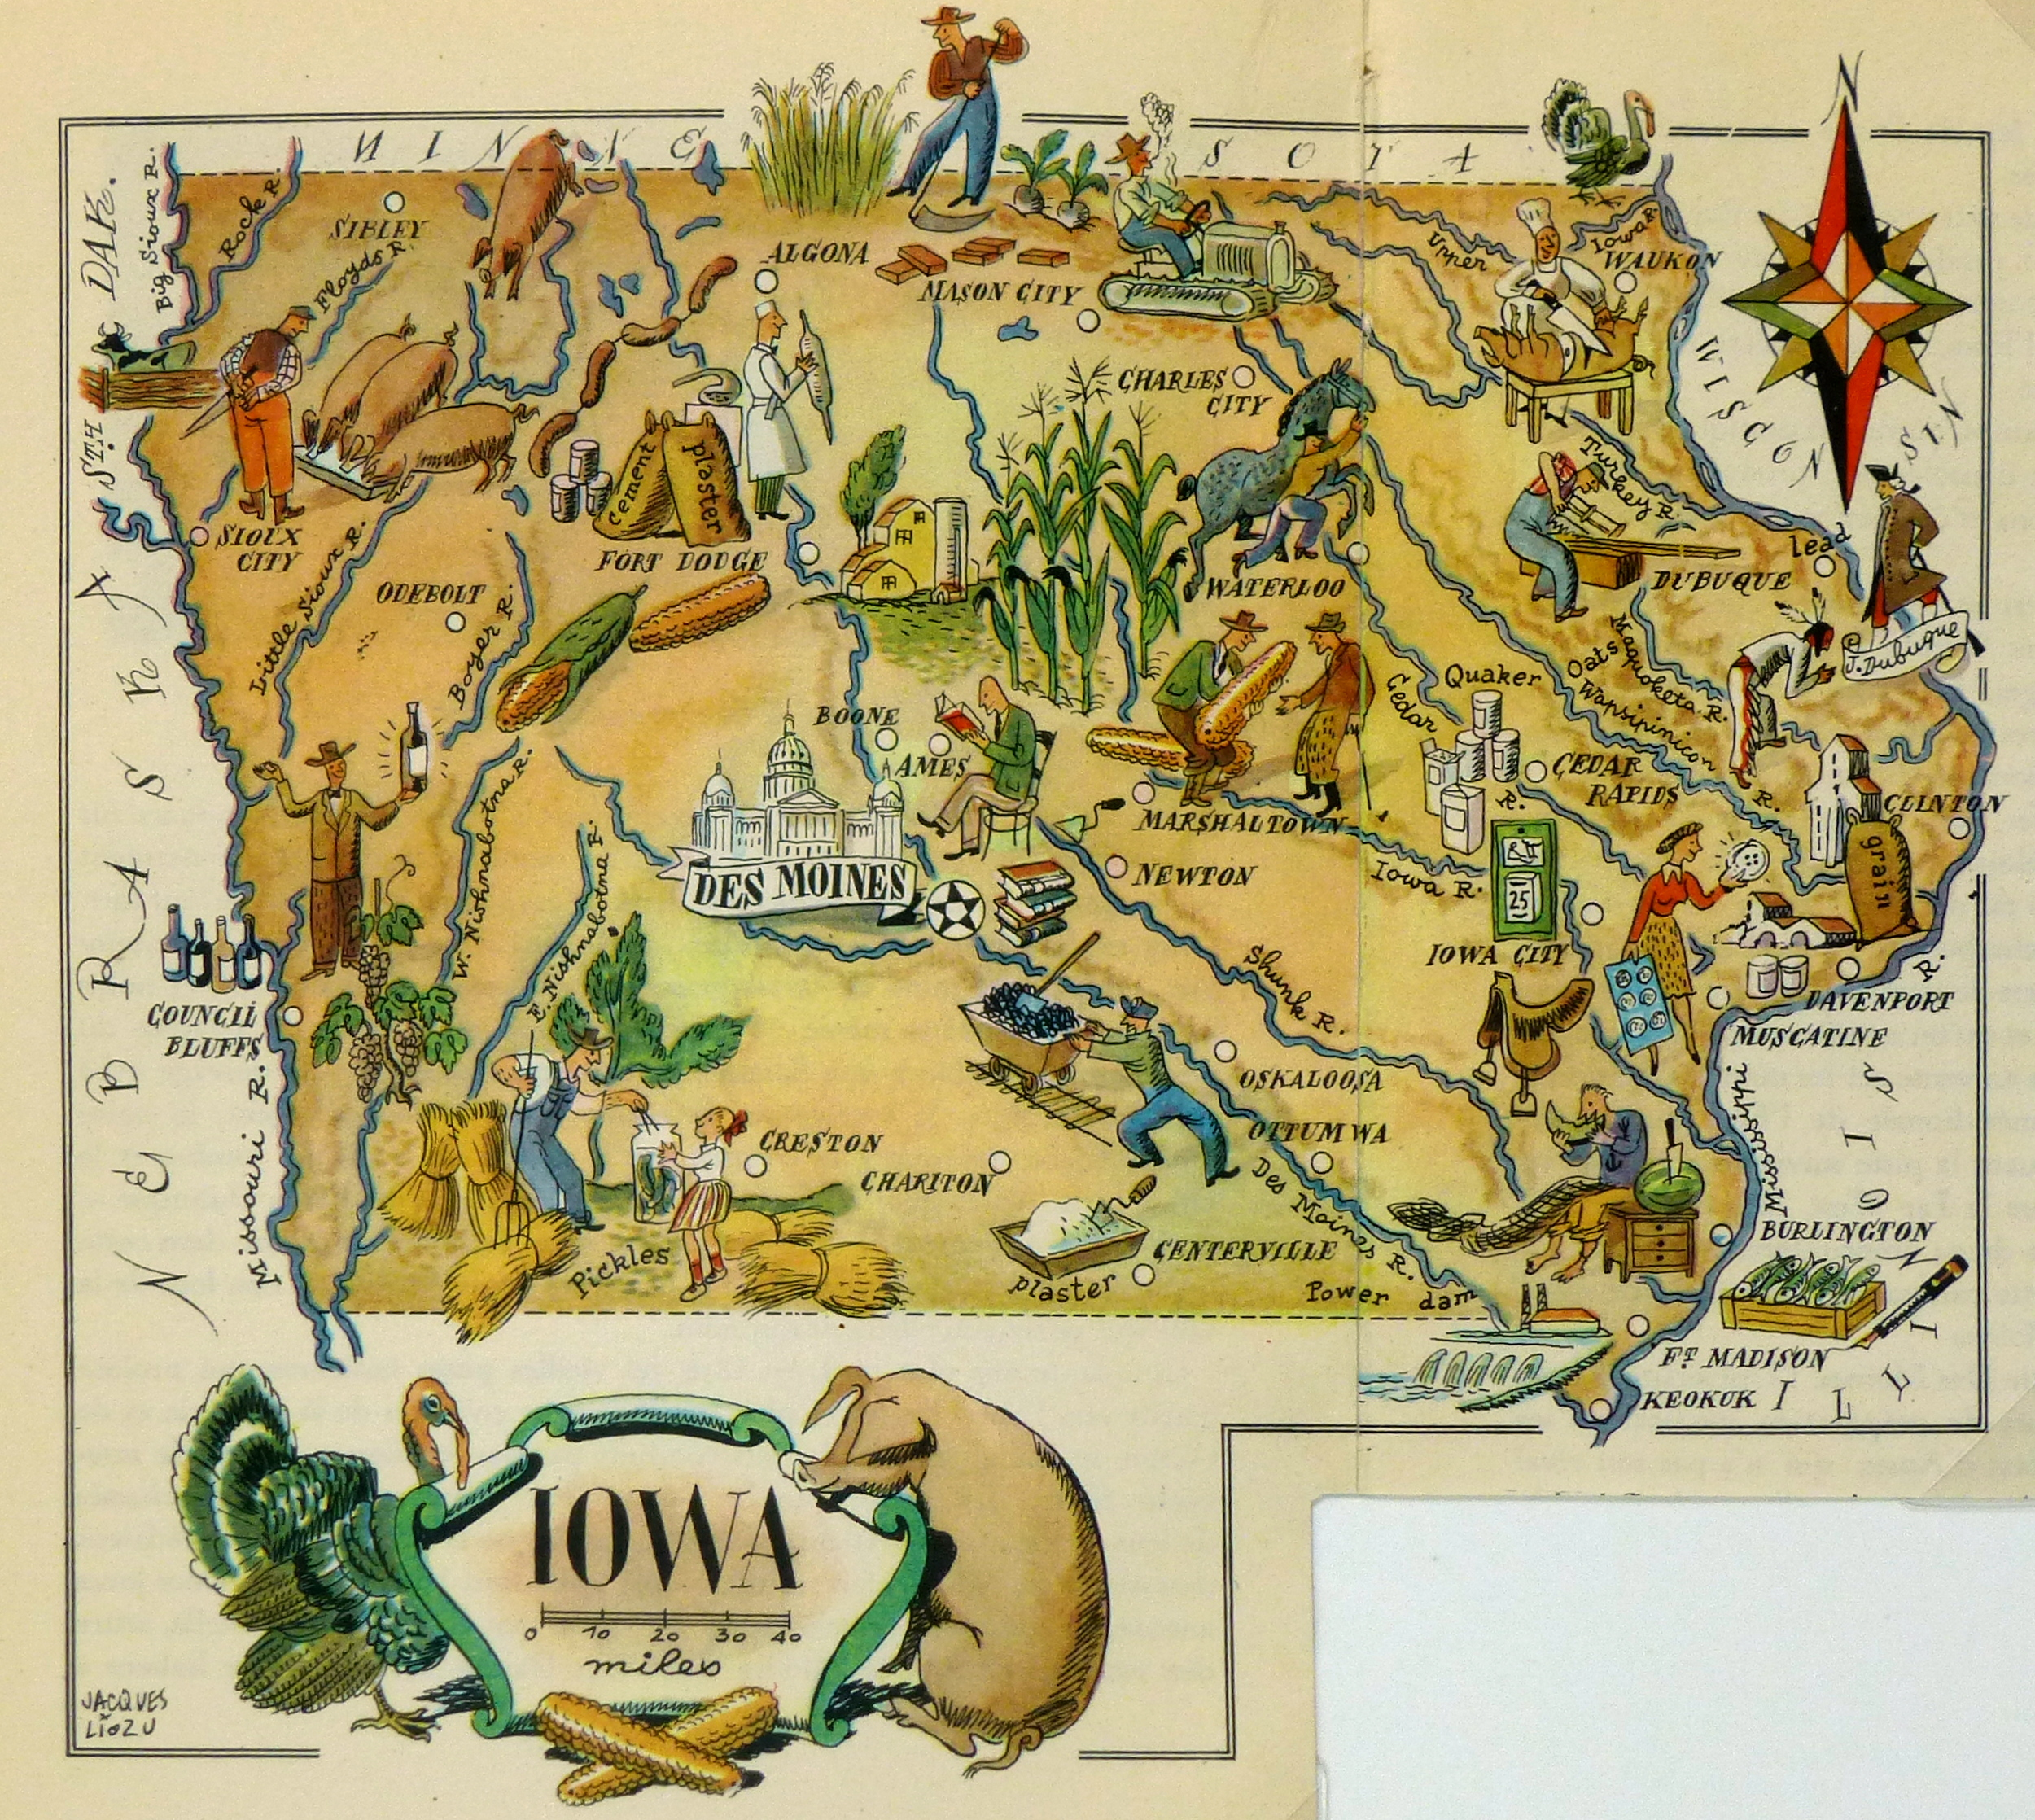 Iowa Pictorial Map - Vintage iowa map